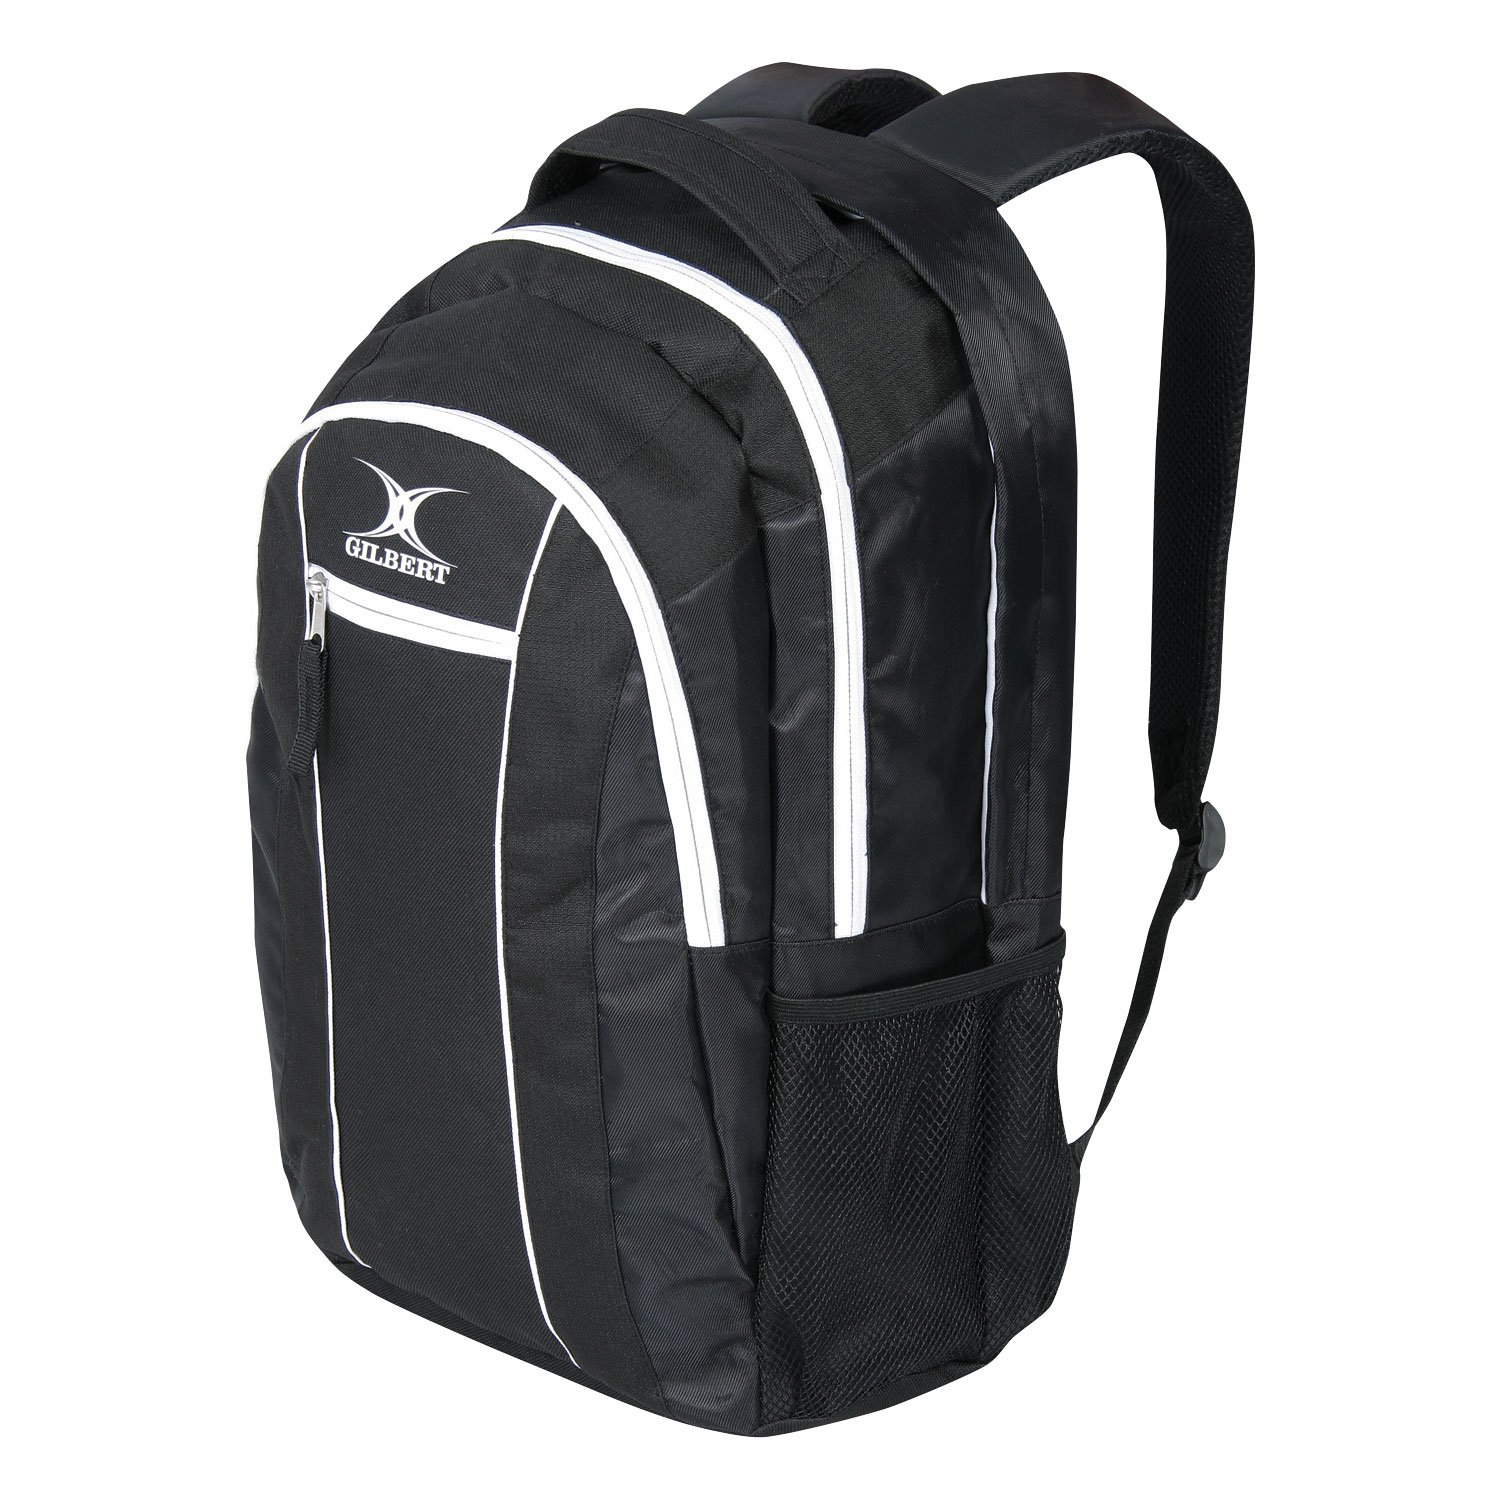 Gilbert Club Rucksack - Black 5024686211210